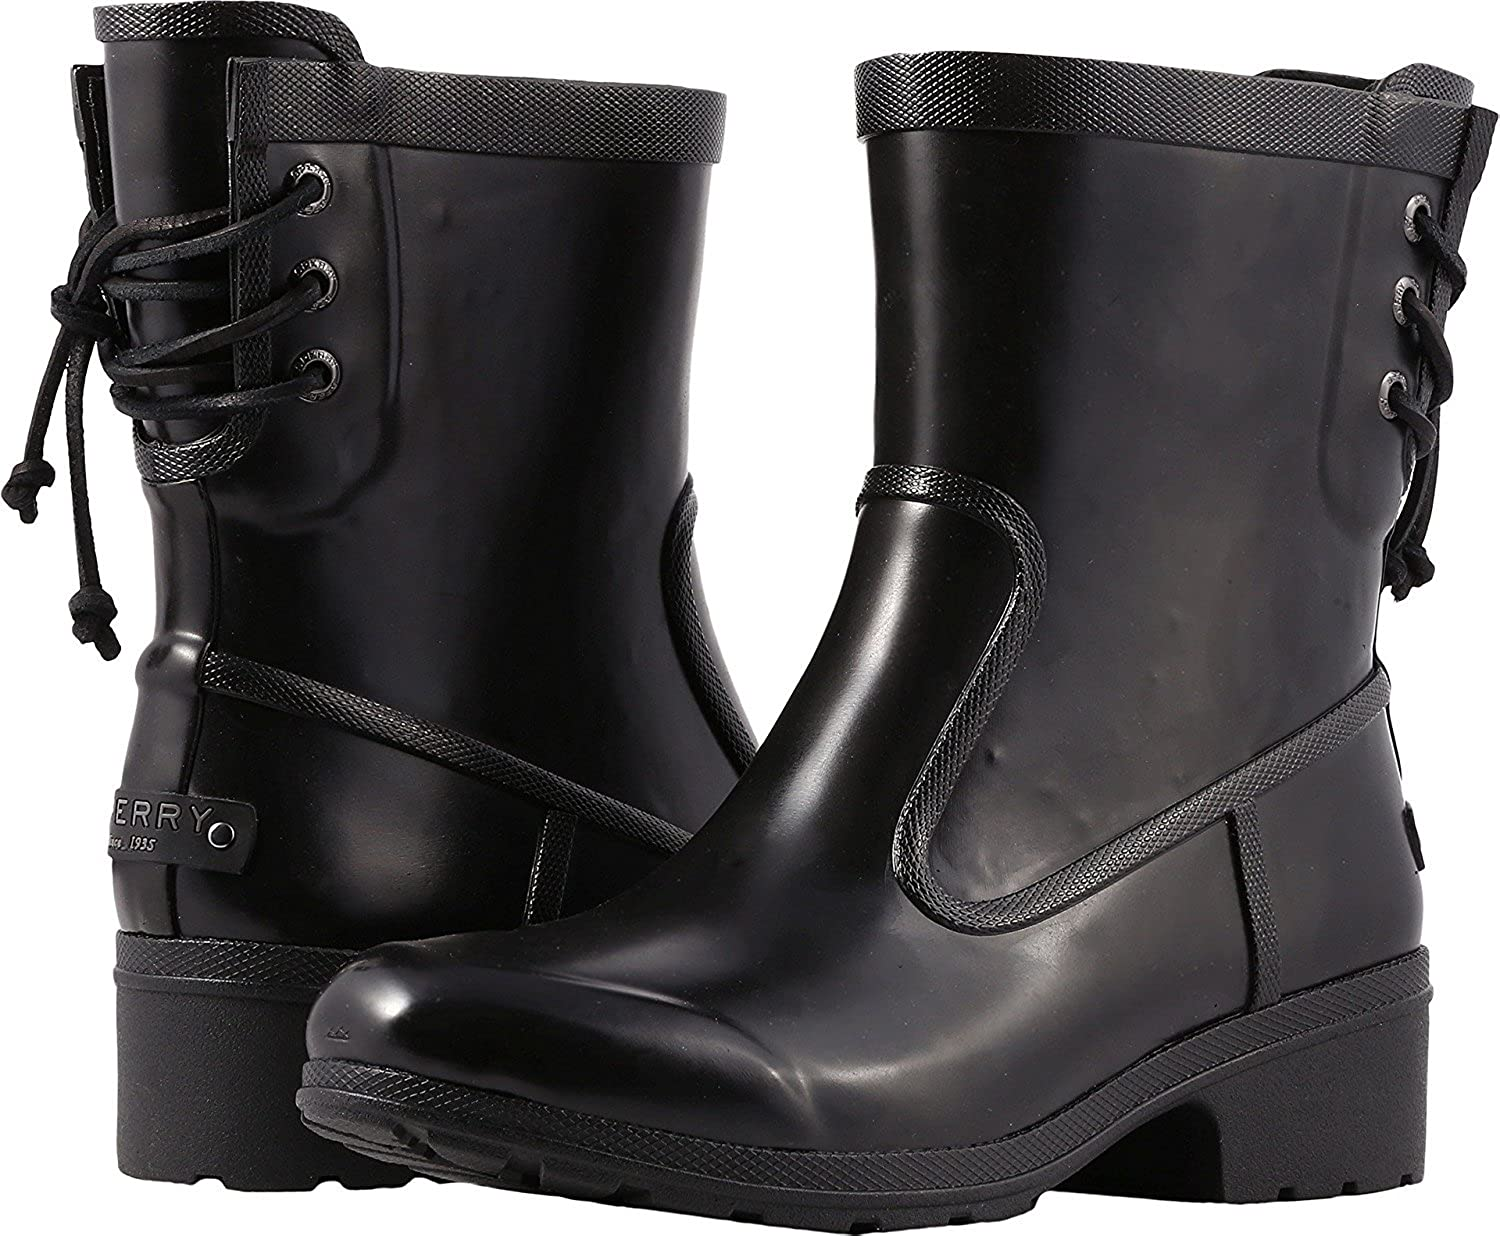 Sperry Top-Sider Women's Aerial Lana Rain Boot